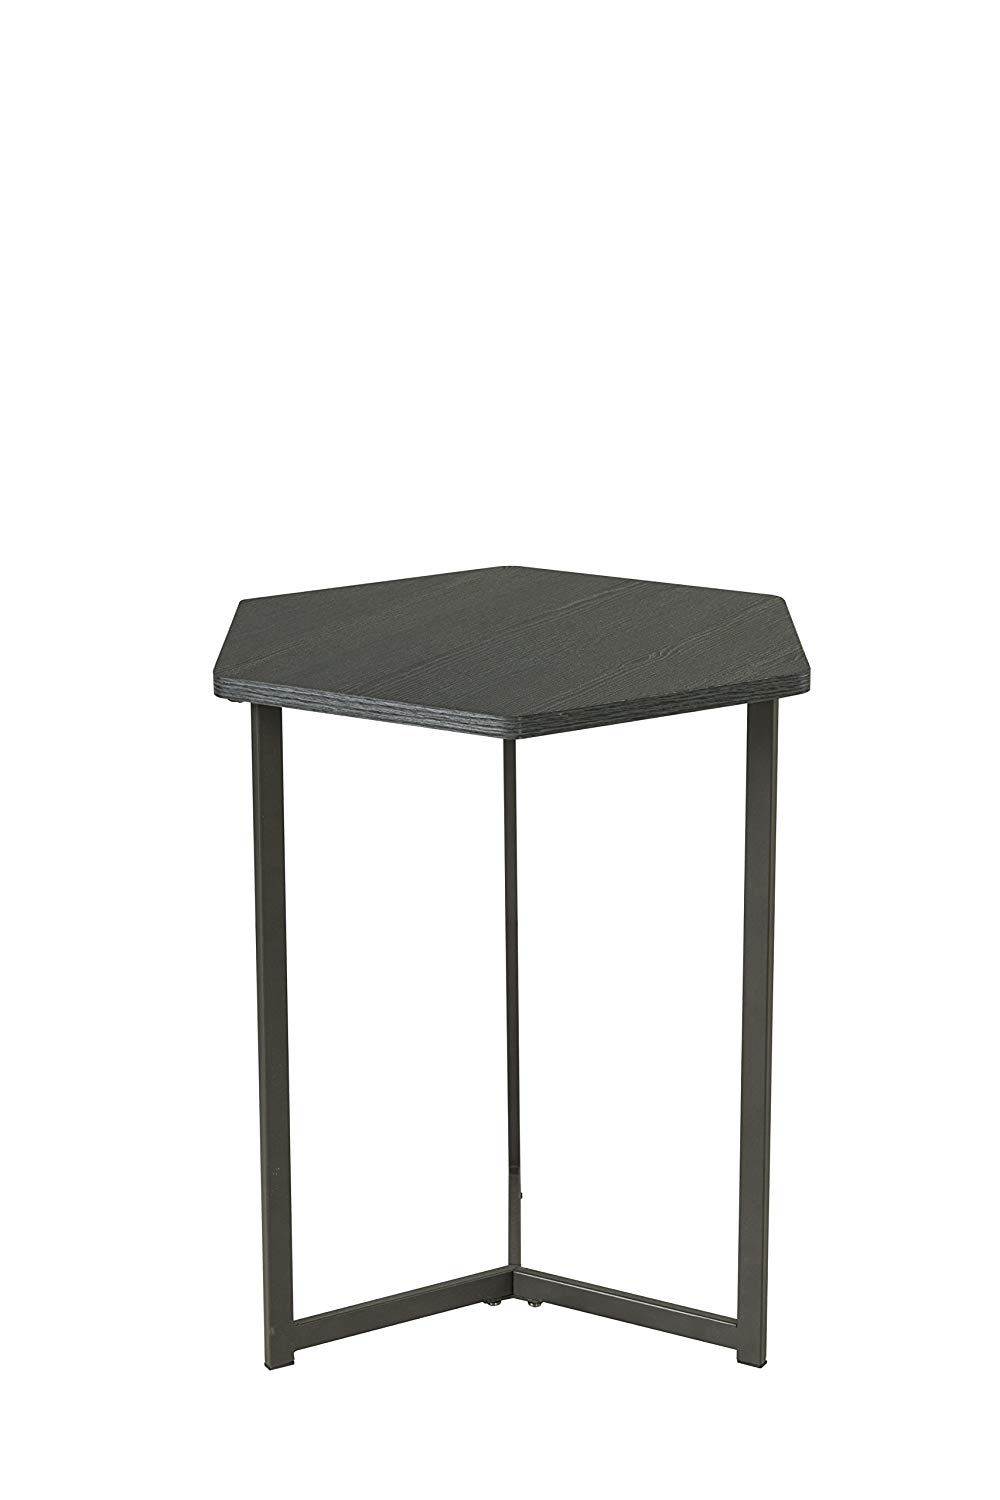 homestar hexagon side end table black oak eryn accent kitchen dining high gloss cloth tablecloths wrought iron with glass top mirrored desk target jcpenney baby bedding magnussen